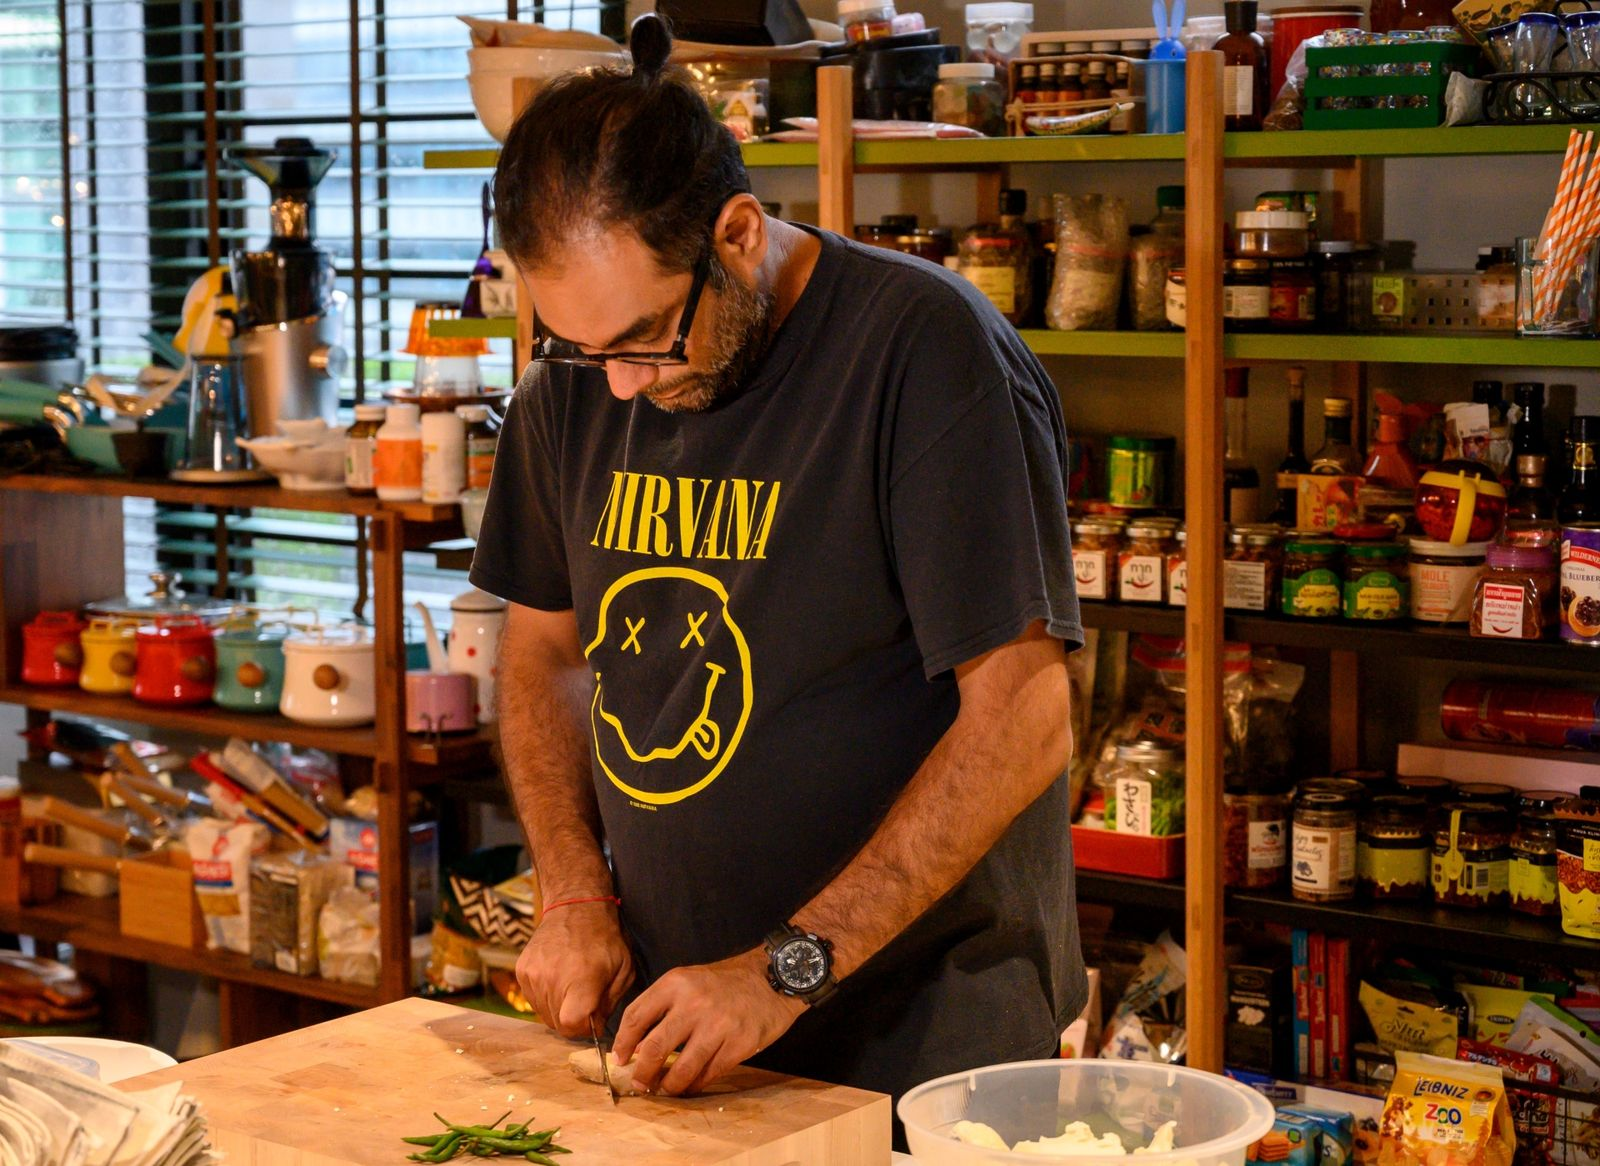 Gaggan Anand will open new Bangkok joint after restaurant's closure